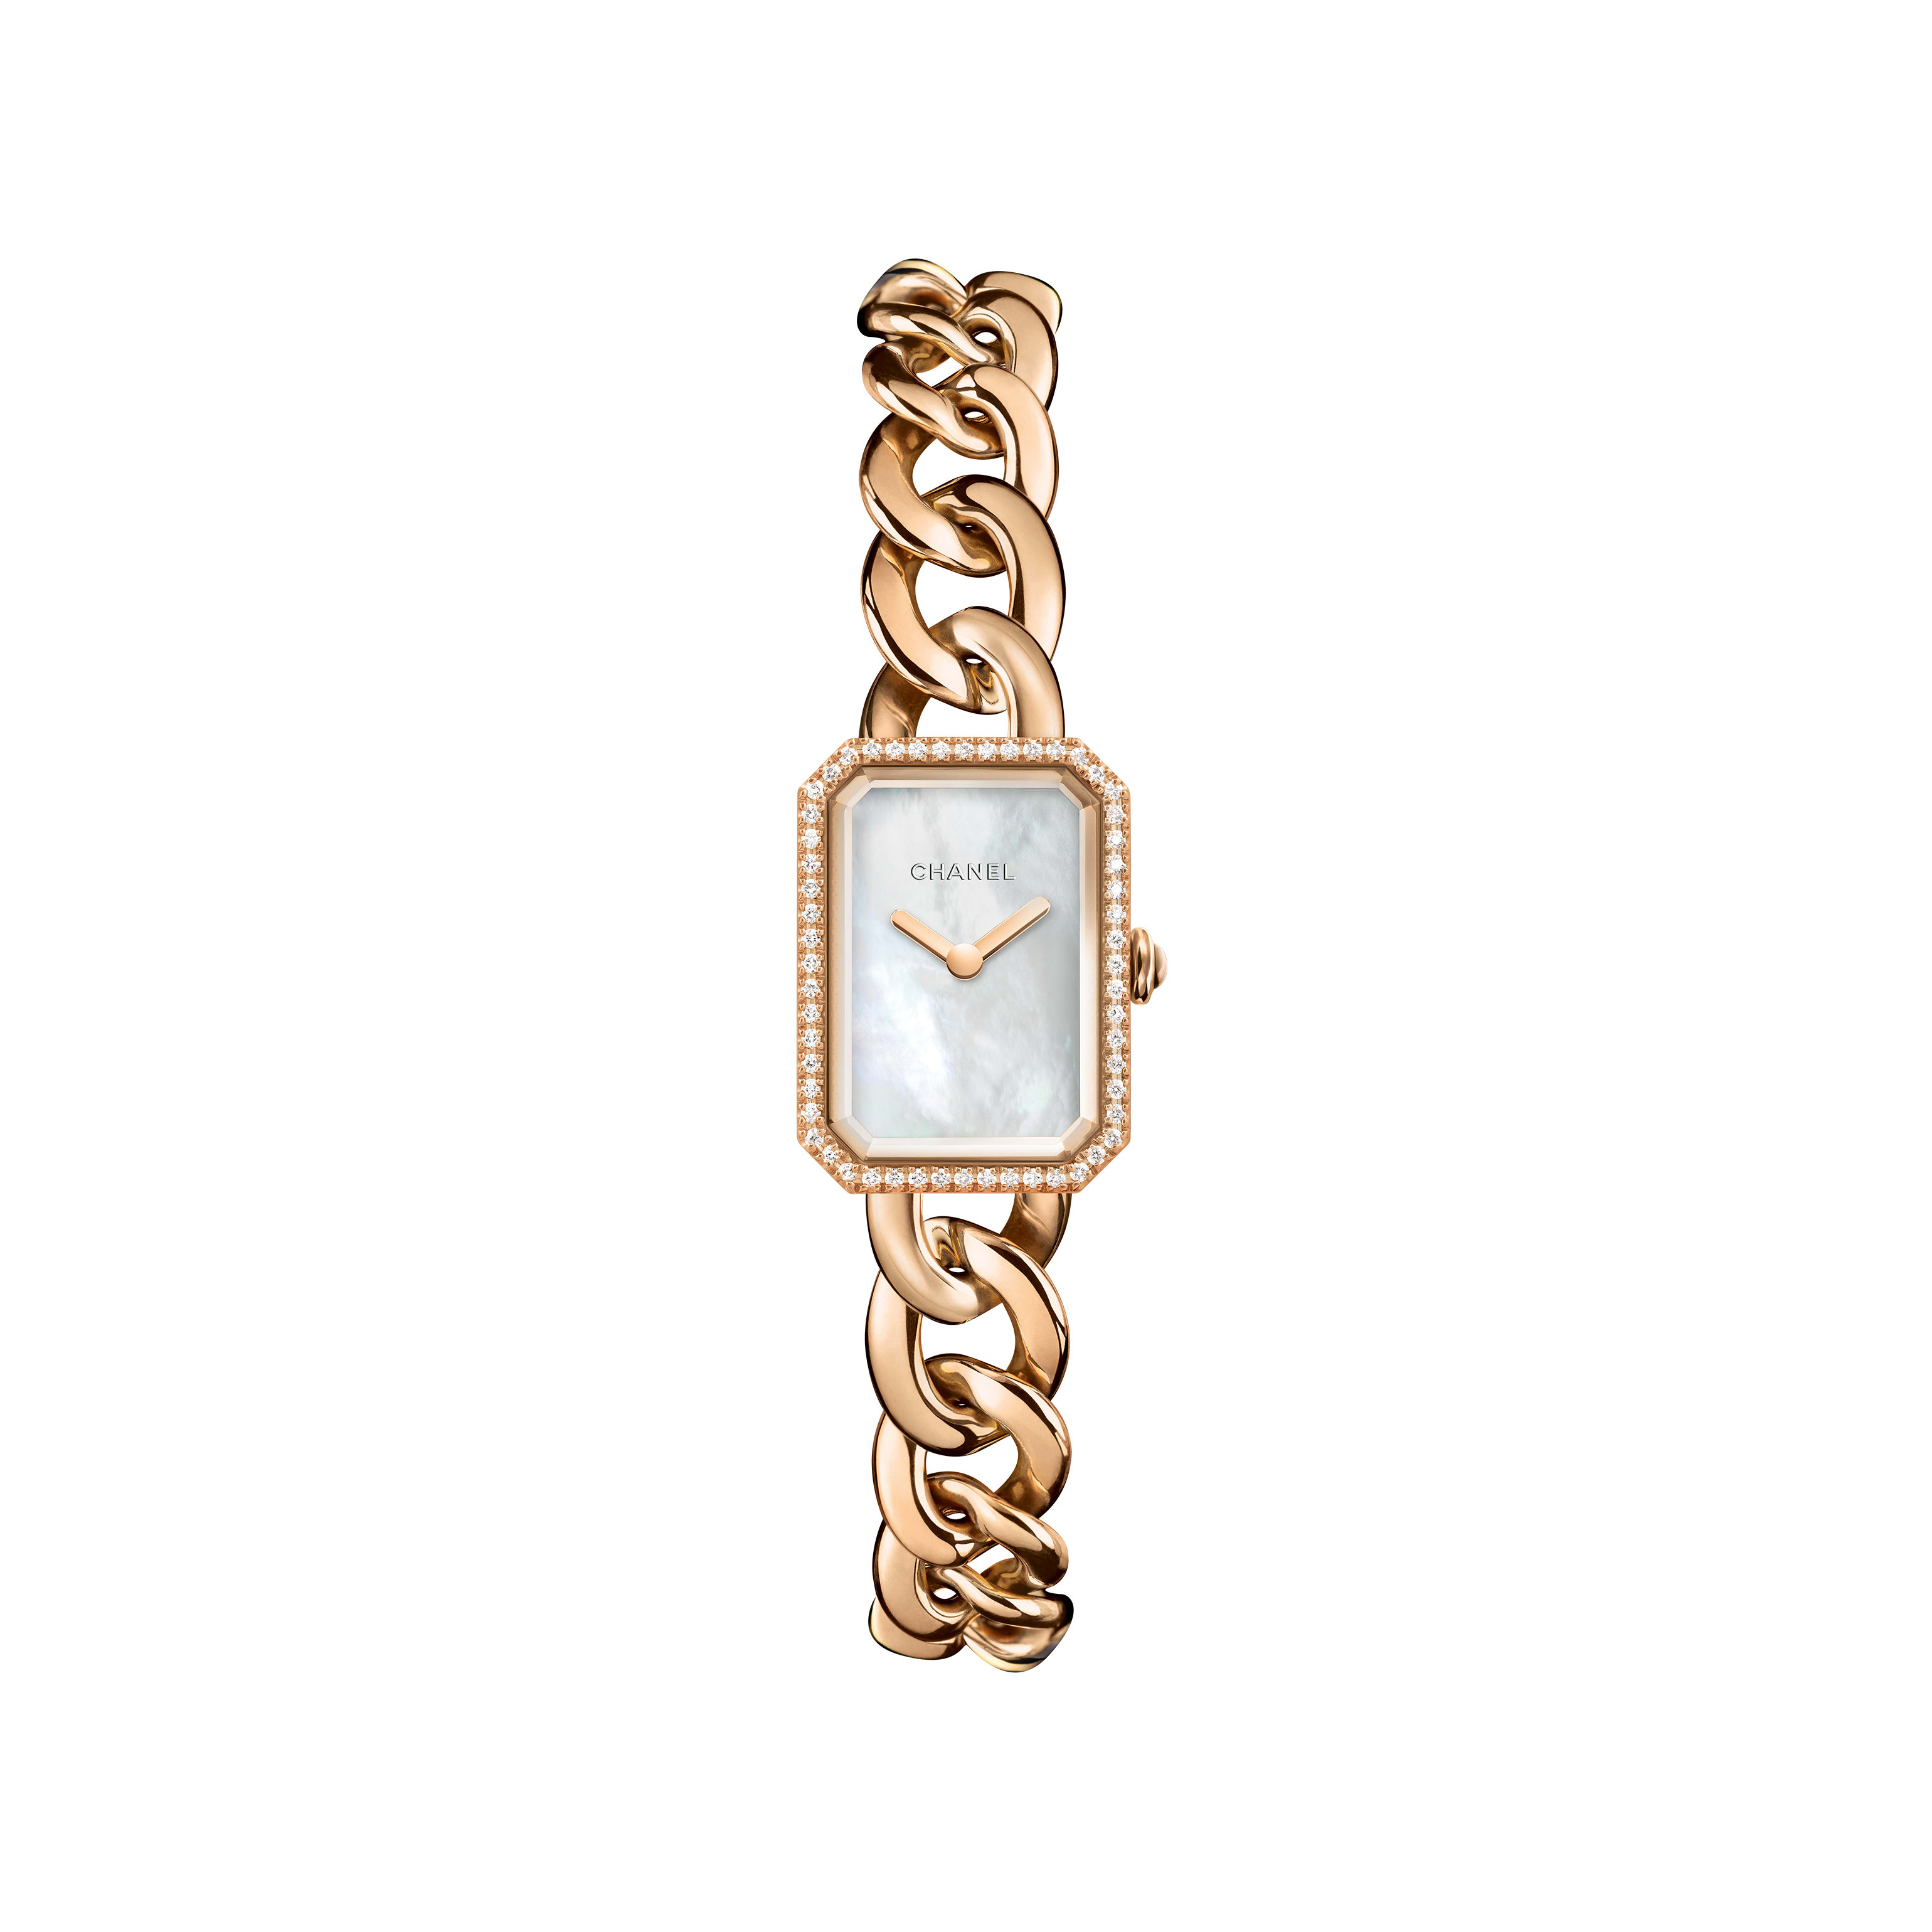 Première Chaîne - Small version, BEIGE GOLD and diamonds, white mother-of-pearl dial - CHANEL - Default view - see standard sized version